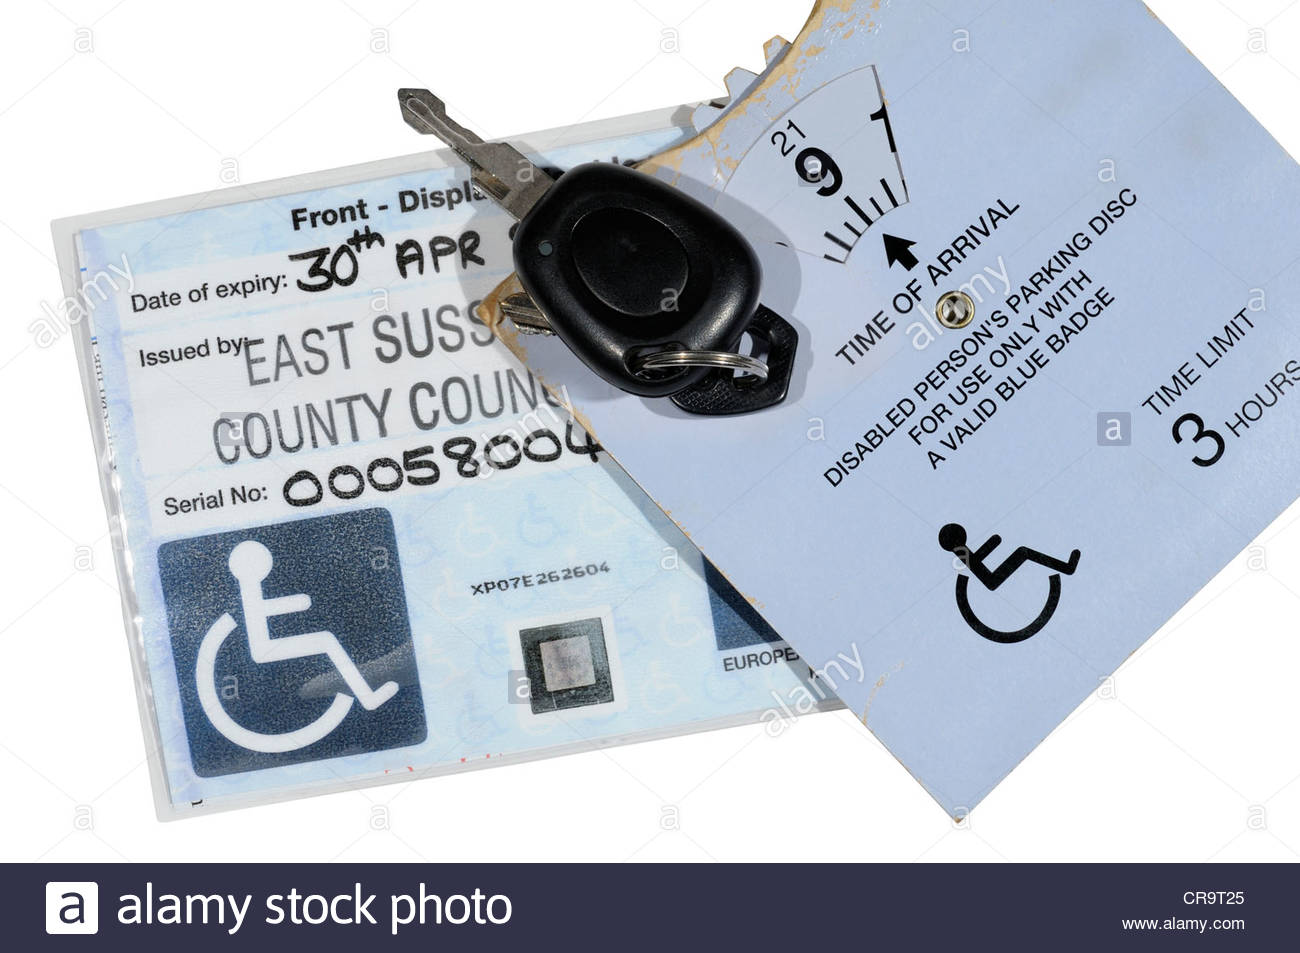 Disability Blue badge, parking clock and car keys, England - Stock Image